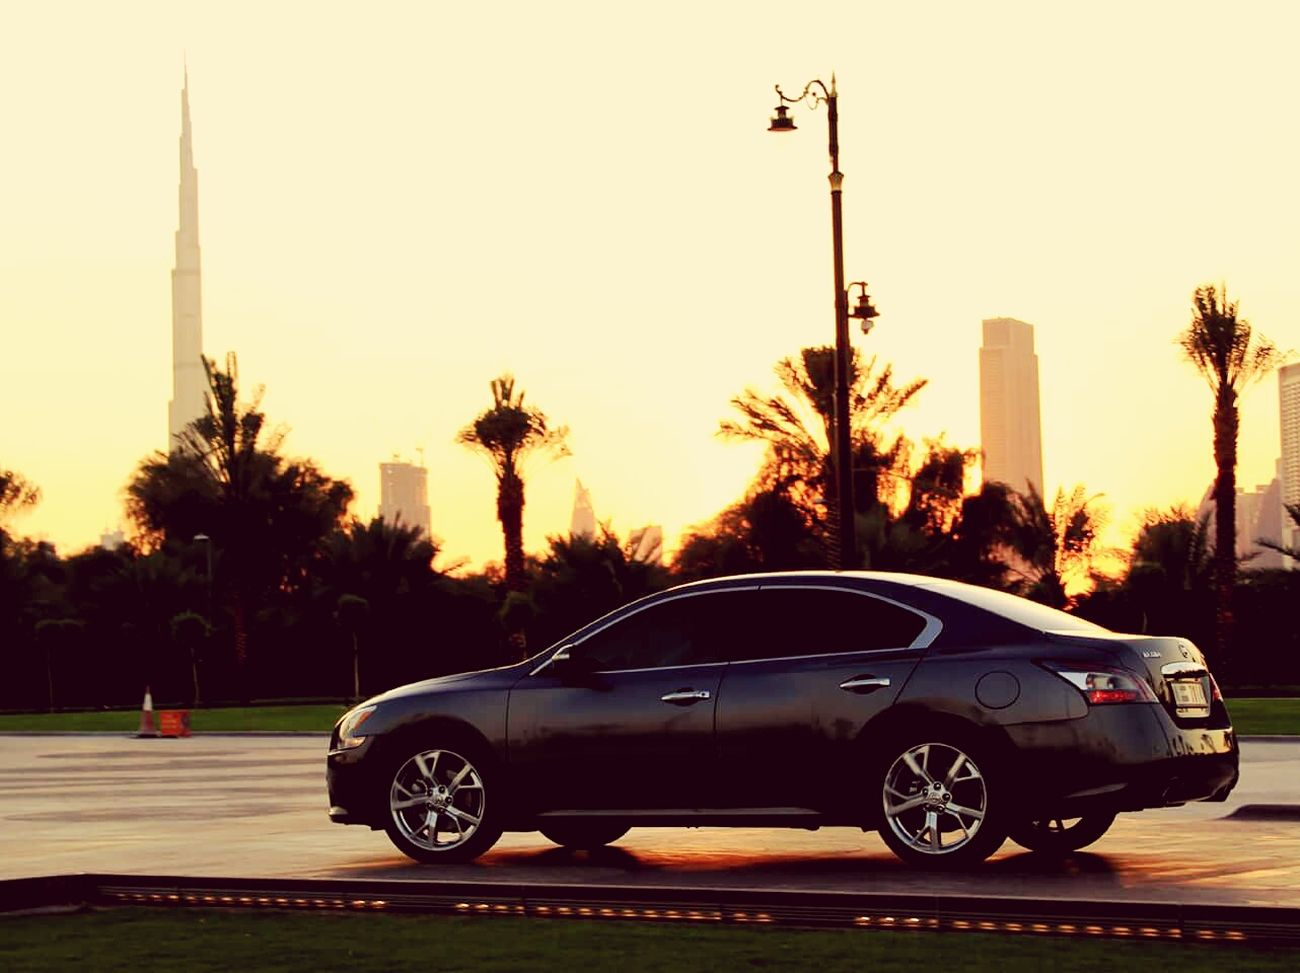 My new ride.... ☺ NissanMaxima MyCar On The Road Burj Khalifa Zabeel Enjoying Life